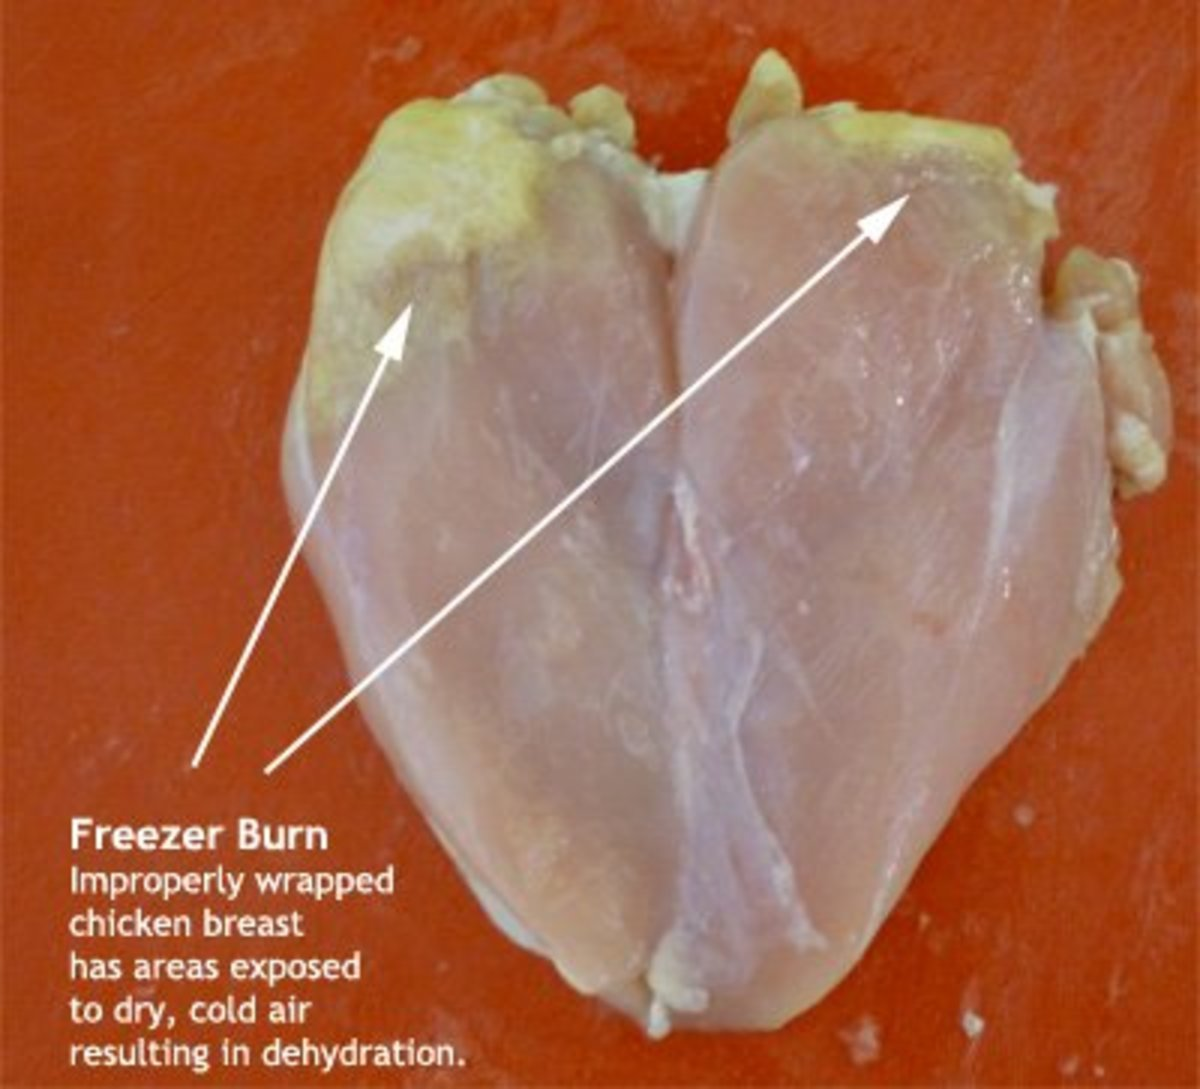 Freezer burn on chicken